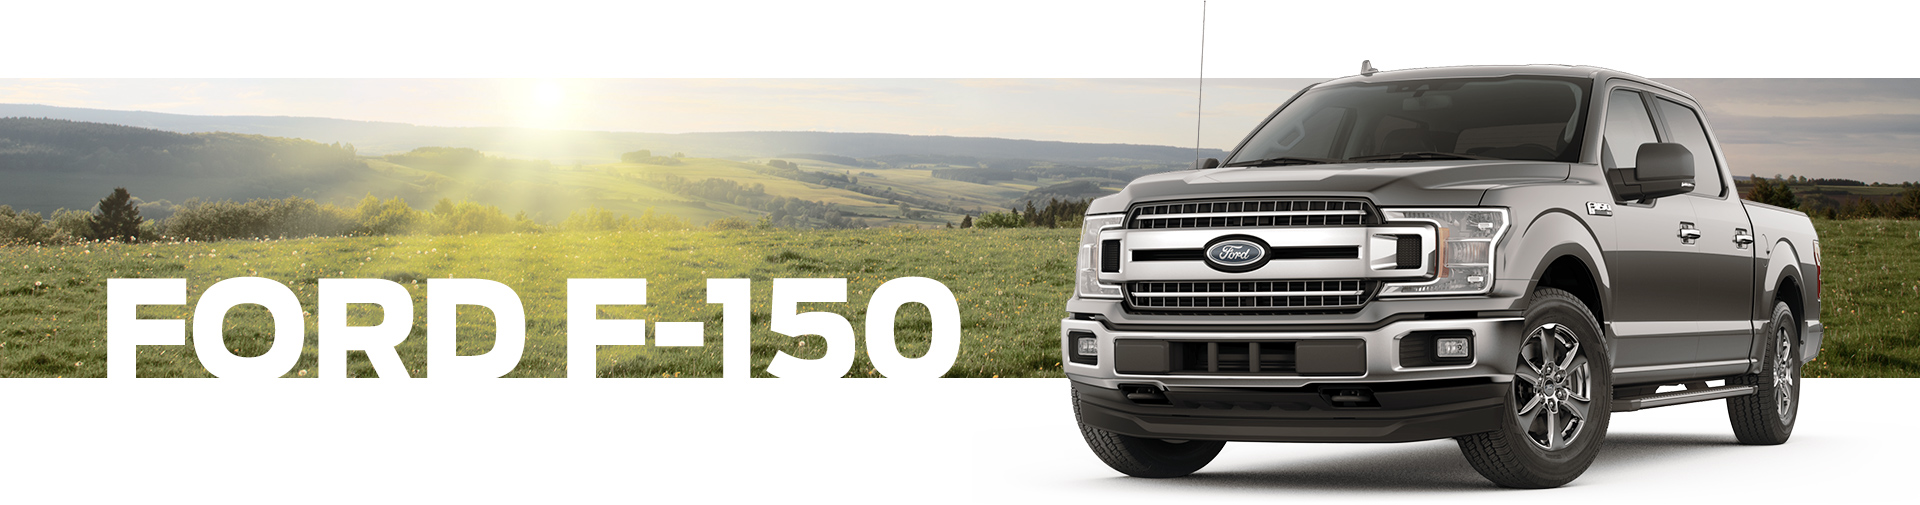 2019 The Ford F-150